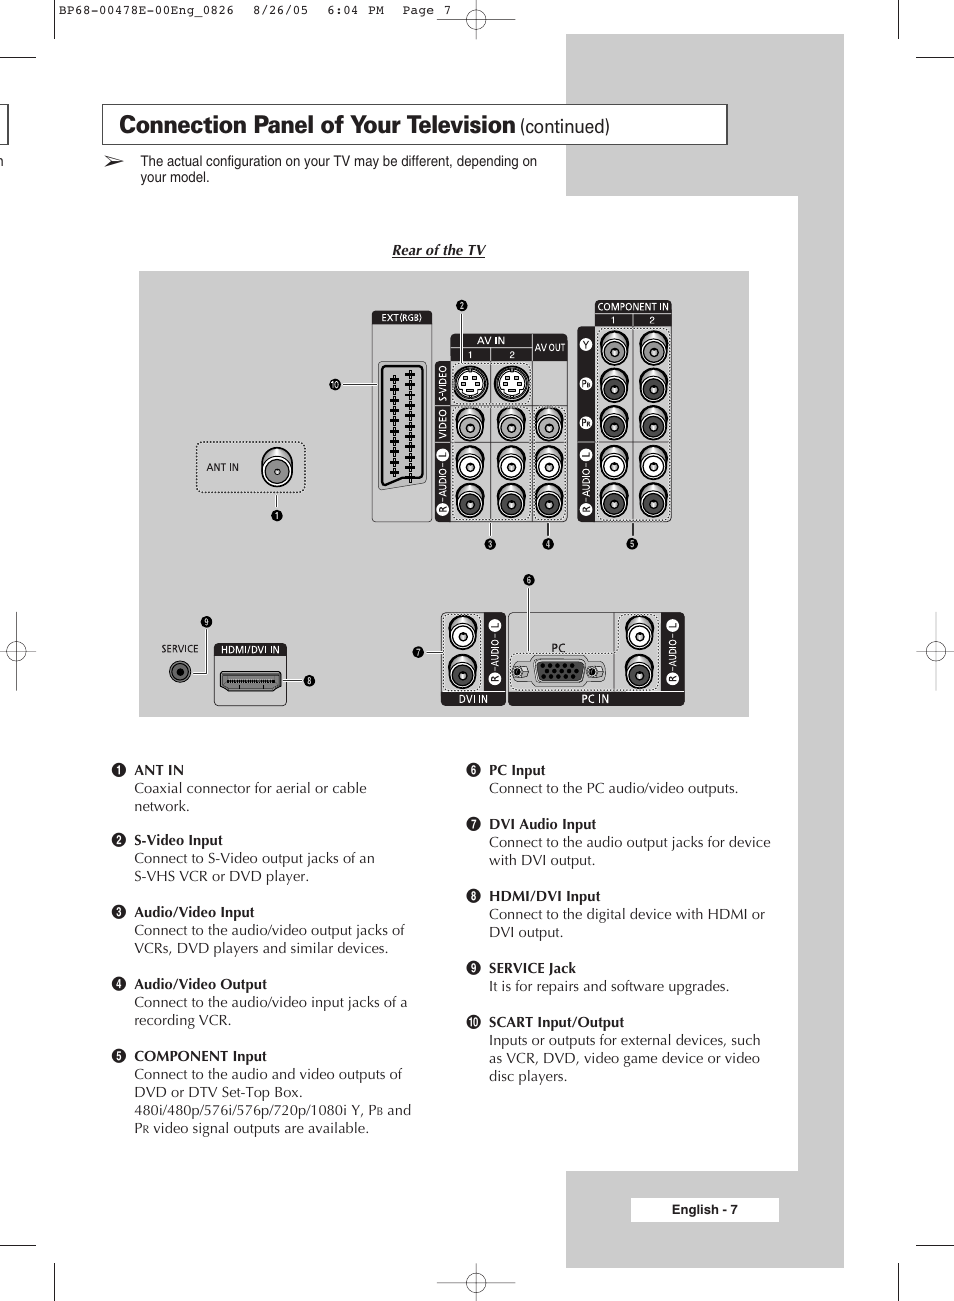 connection panel of your television continued samsung dlp tv rh manualsdir com Samsung TV Manual Model LN46A530P1F Samsung 6000 LED TV Manual